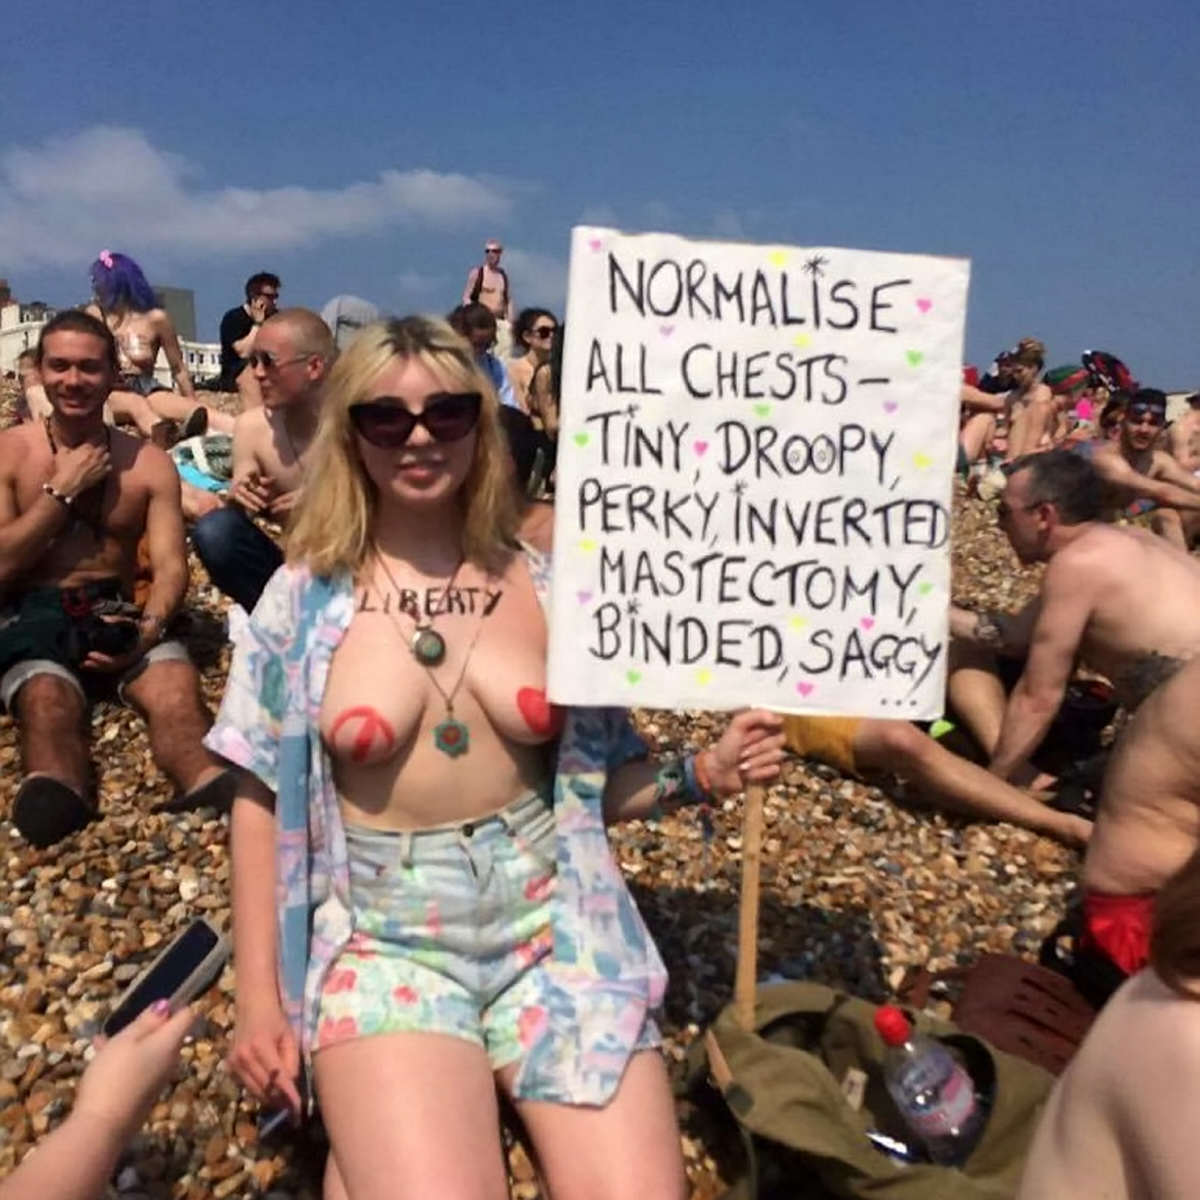 Hundreds Of People Freed The Nipple On Brighton Beach To Protest Censorship SWNS NIPPLE PROTEST 02 1